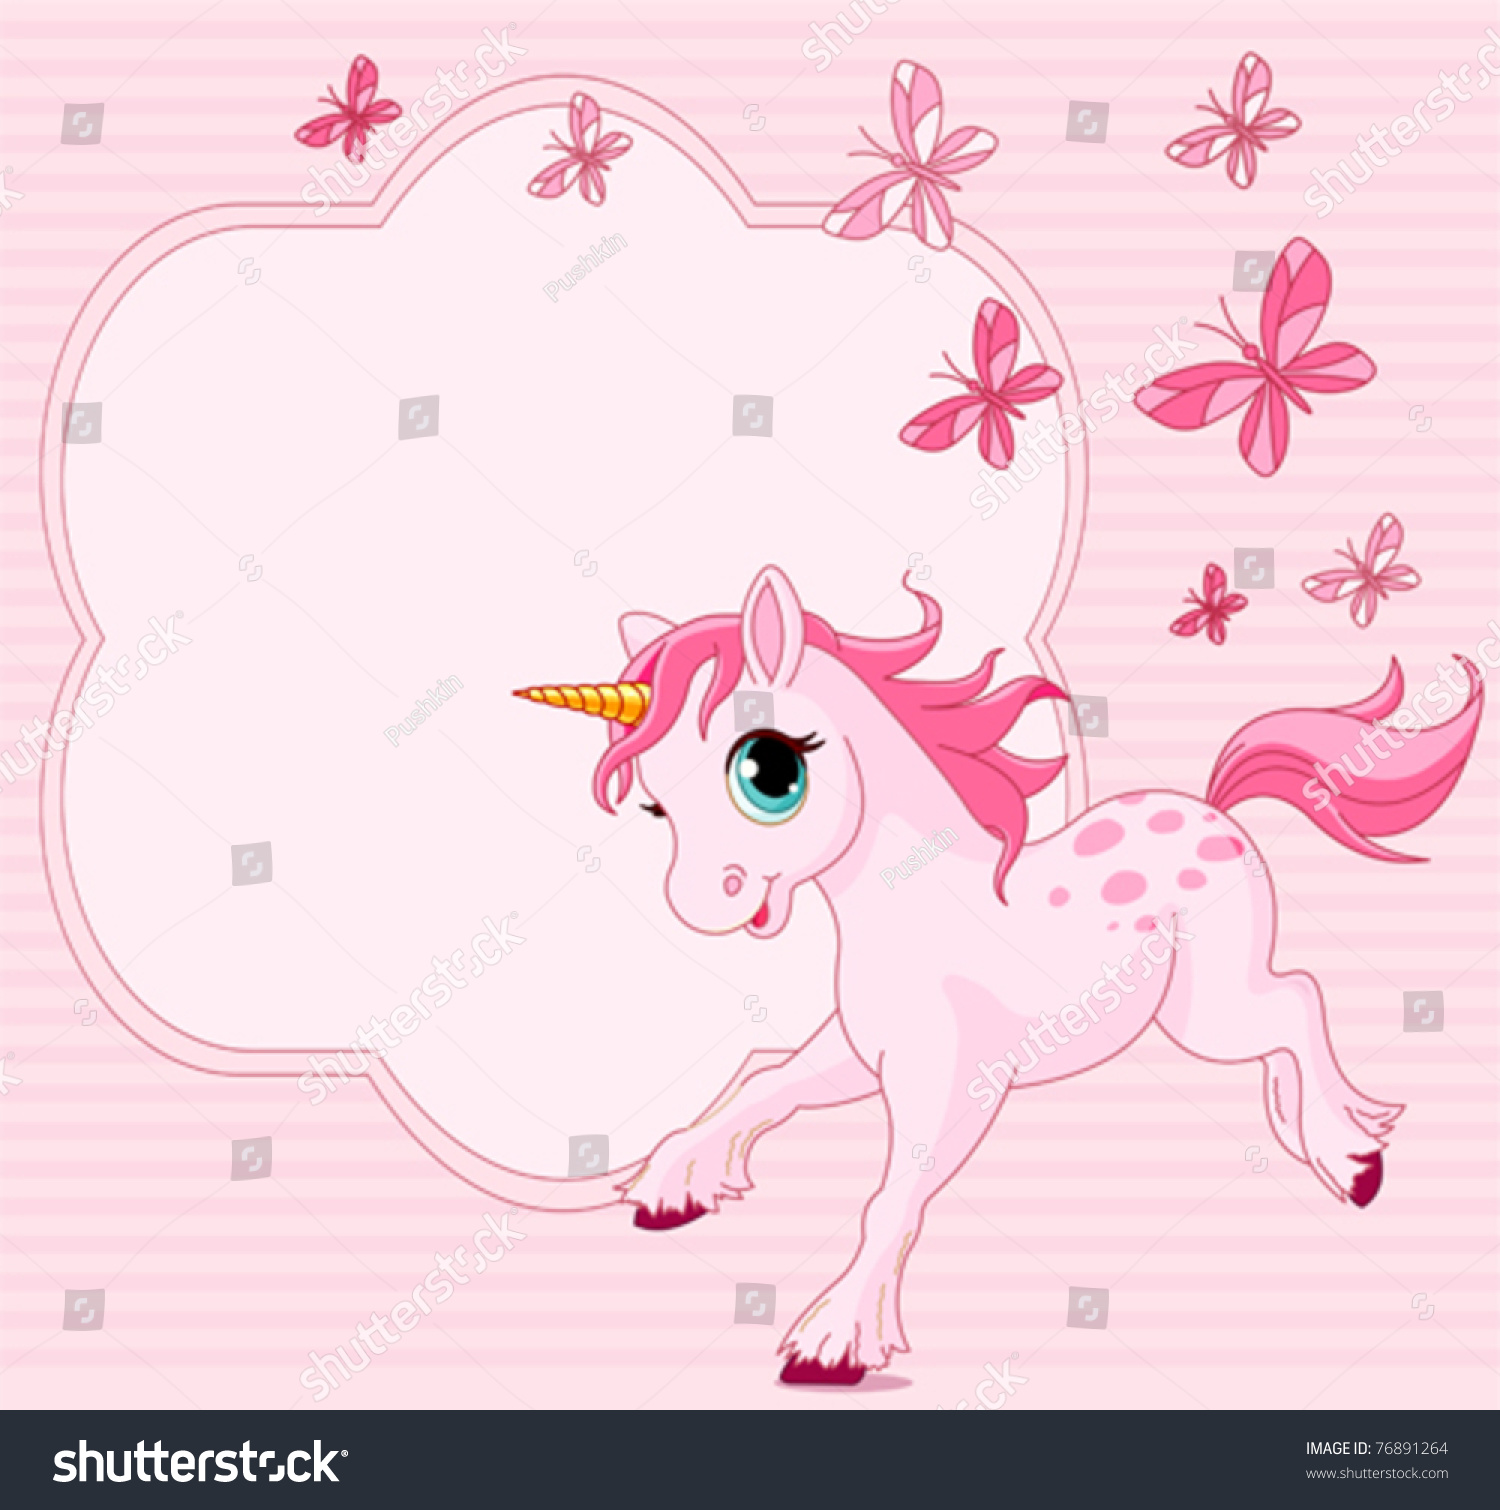 Place Card Running Beautiful Baby Unicorn Stock Vector 76891264 - Shutterstock